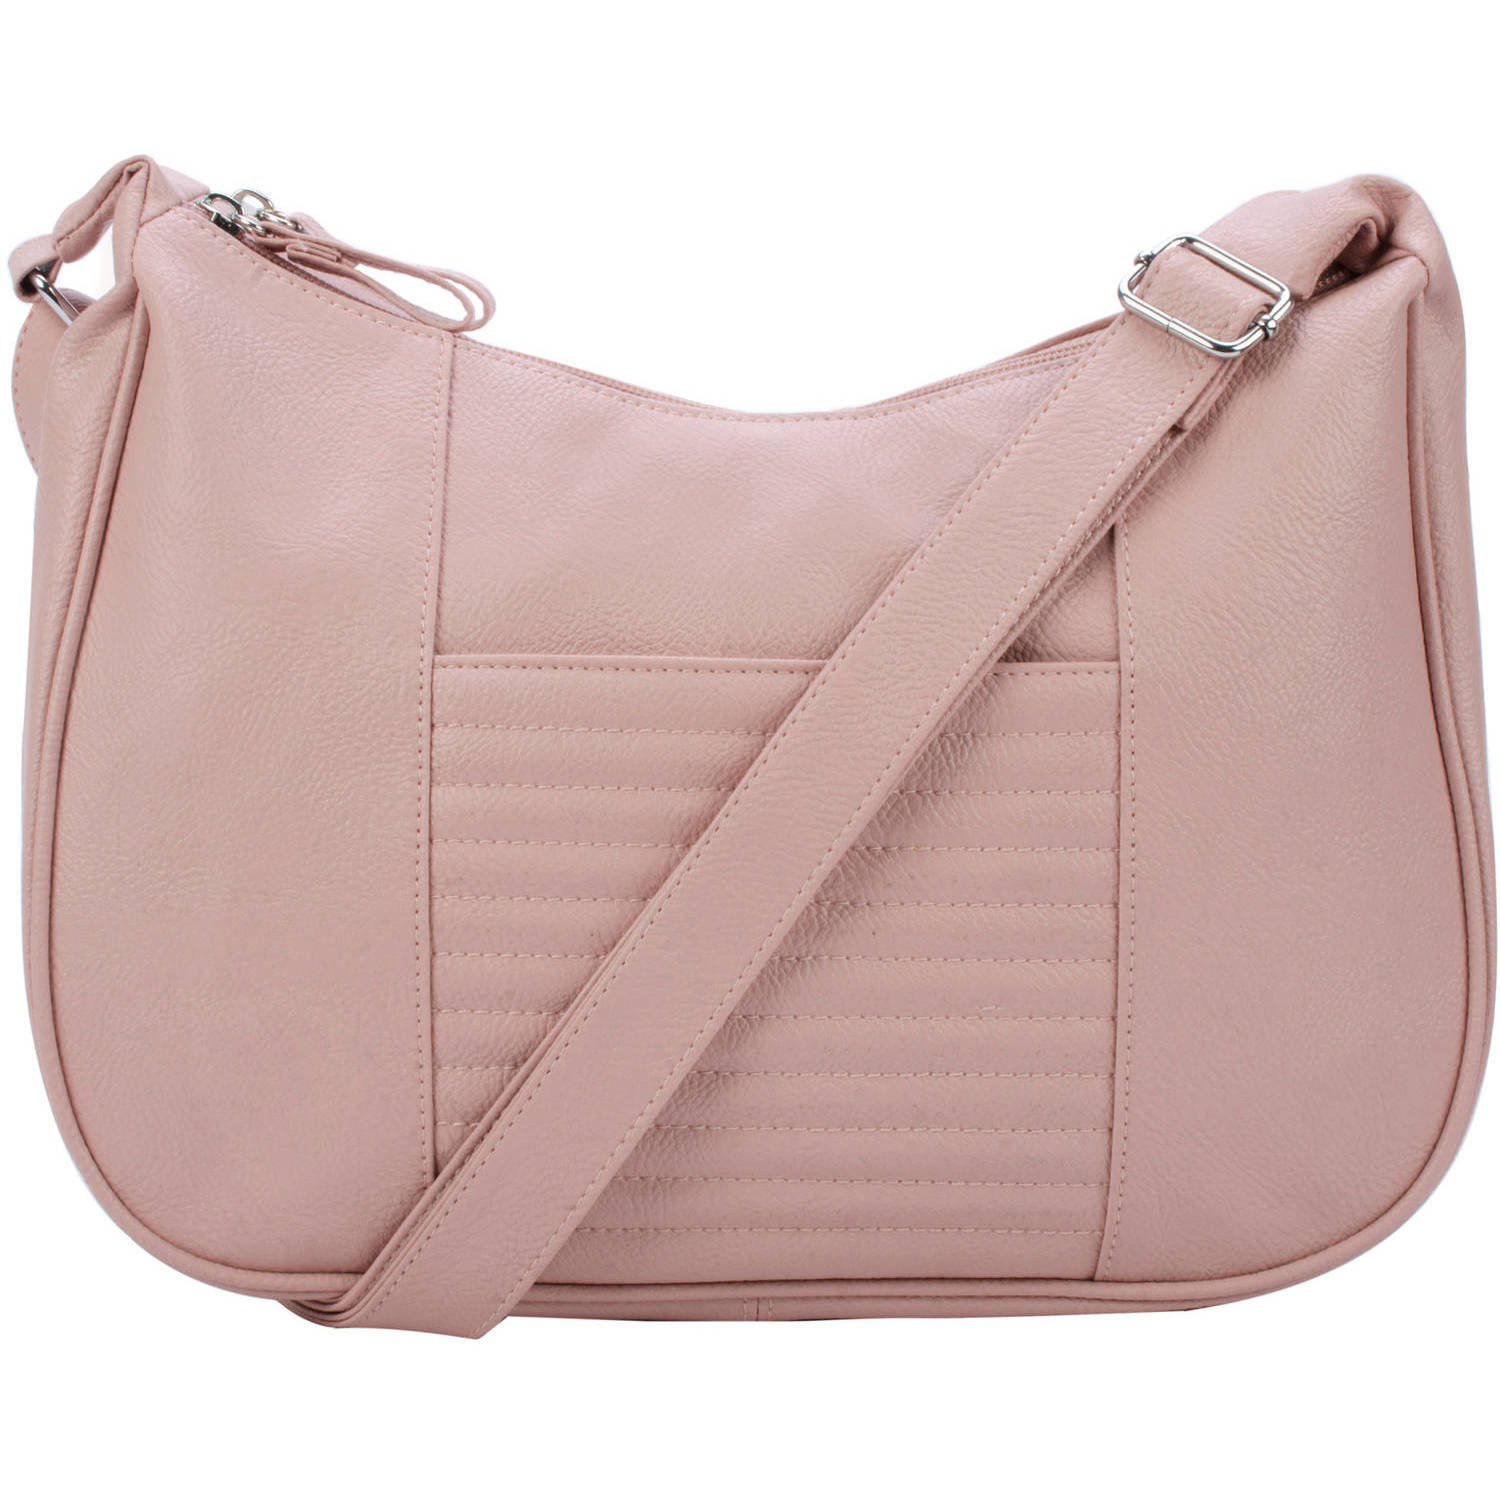 Women's Double Zip Hobo Handbag